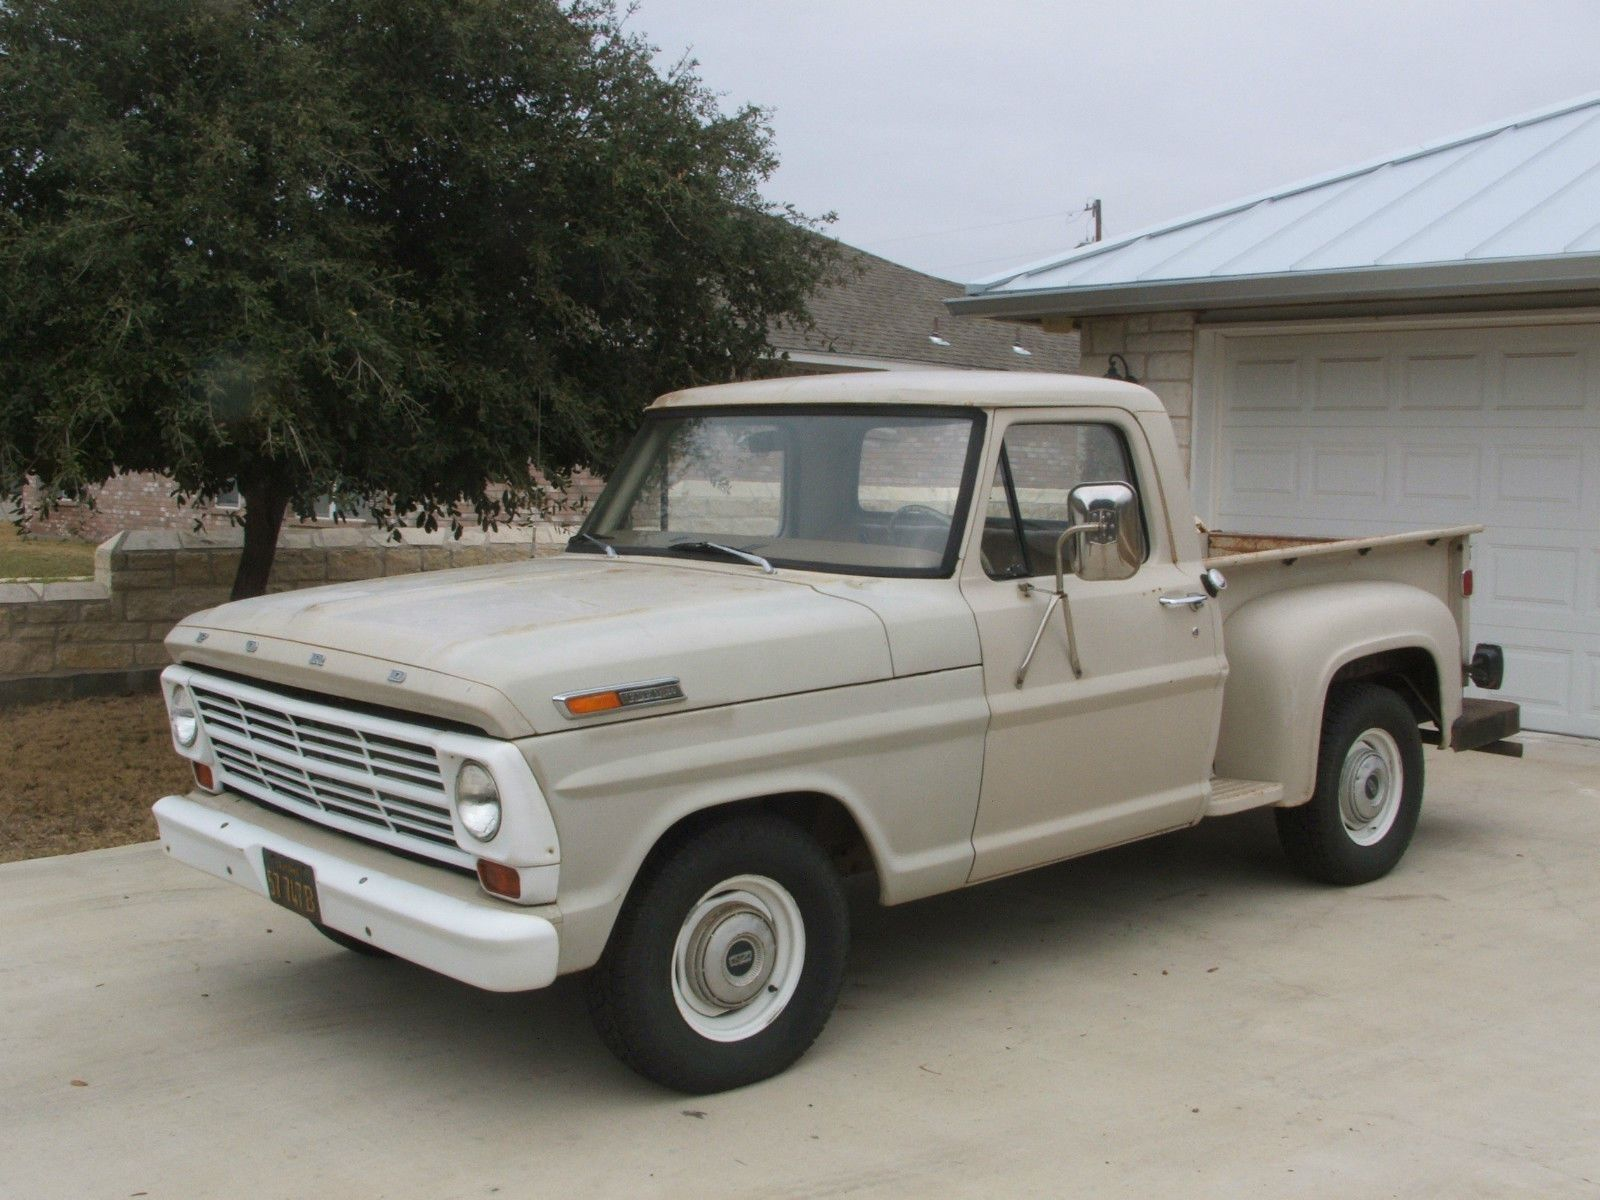 I am currently fixing up a 1967 Ford F100 Stepside just like this one. I  want to finish fixing it and getting it inspected before i get my driver's  license.